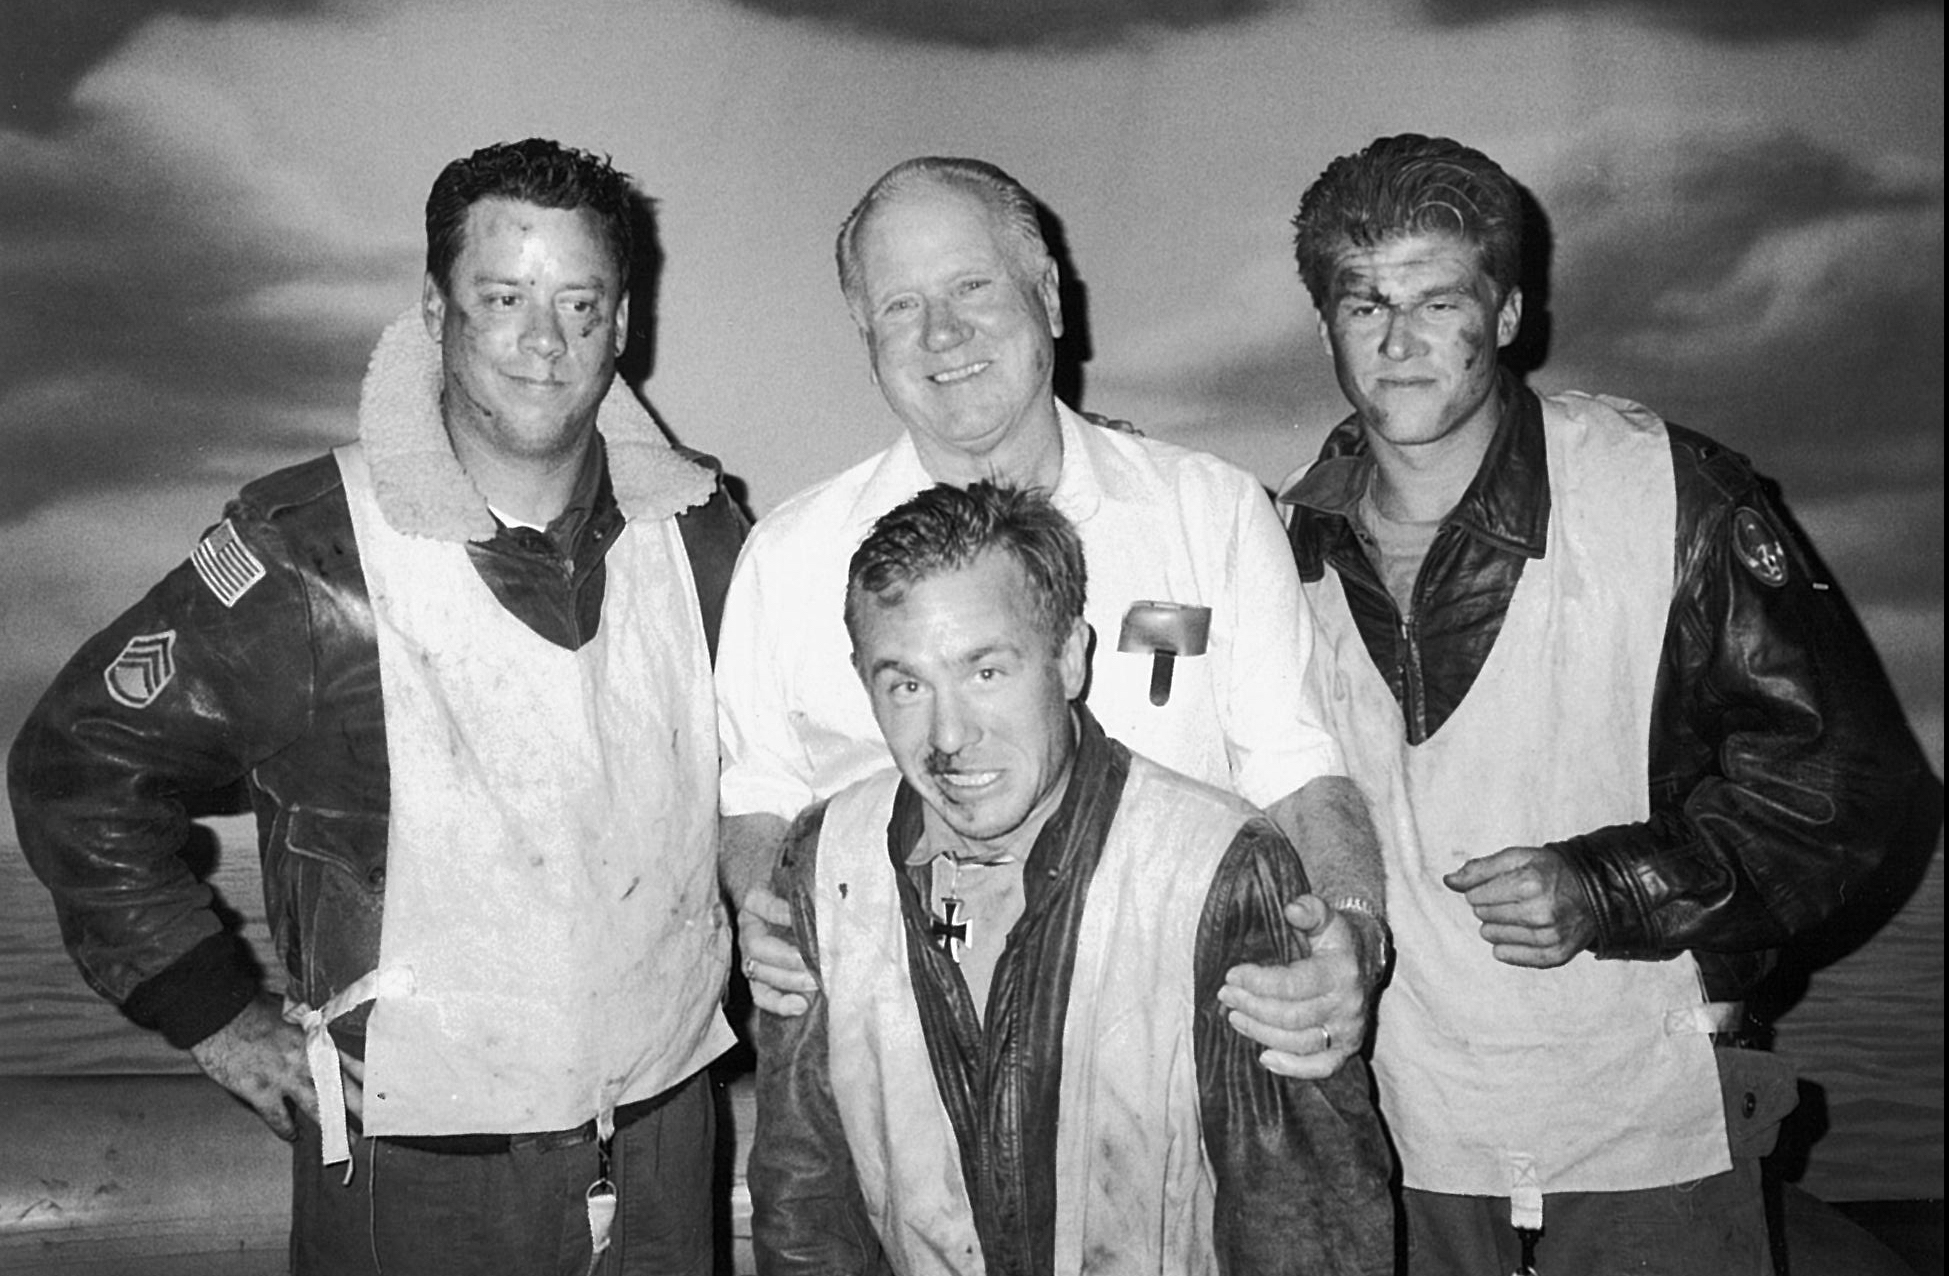 """Bud with the Cast of """"Adrift""""   June 5, 1998,Beachwood Studio Playhouse, Hollywood, Ca   Bud Kingsbury attended opening night of """"Adrift,"""" a one act play, written and directed by Mark Kirkland, about downed-B-17 crewmen who pull a downed-German pilot into their life raft in the middle of the open sea.After the performance, Bud got up on stage and told his own survival story to the audience. No one who was there will ever forget that evening."""